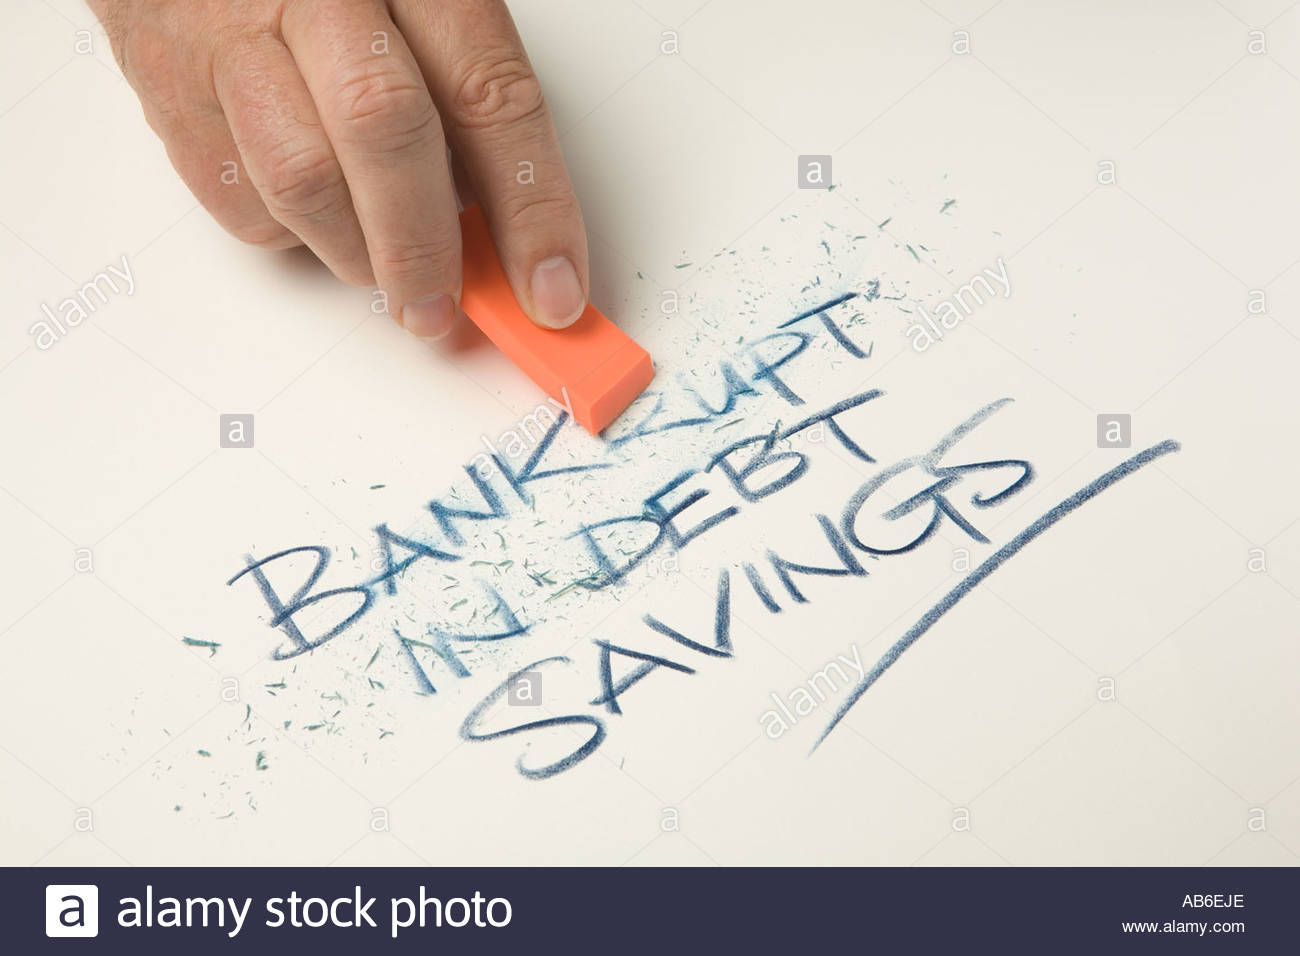 Mans hand holding a orange eraser rubbing out the words bankrupt and in debt. - Stock Image